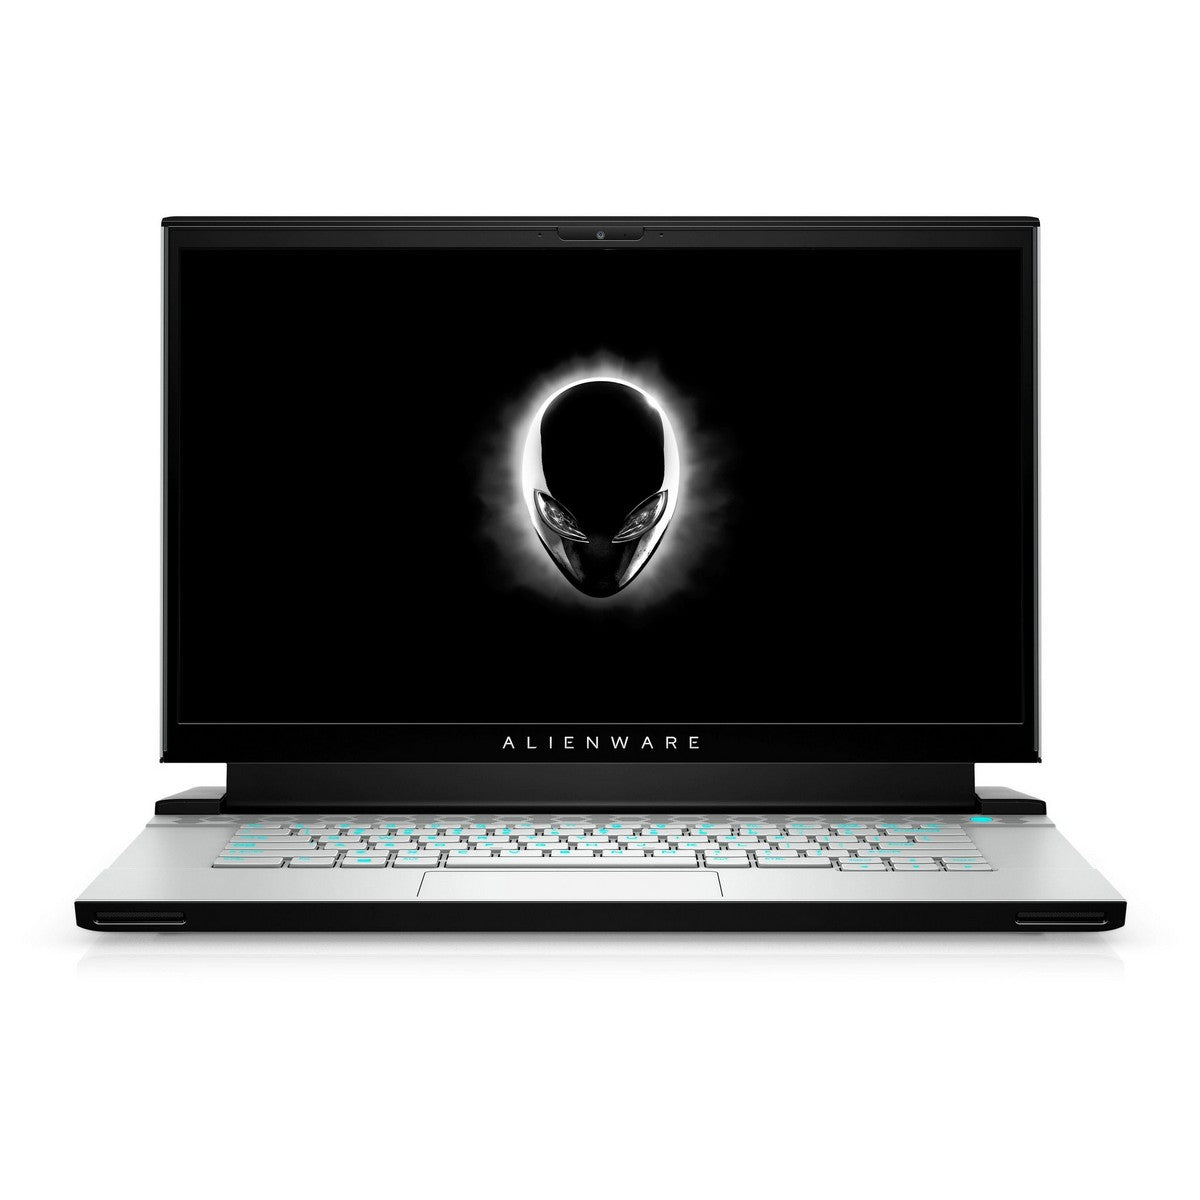 Alienware M15 R2 Gaming Laptop 15.6'' FHD , Intel Core i7 i7-9750H 6-Core up to 4.5GHz, RTX 2070 8GB GPU, 8GB RAM, 512GB m2 SSD,  RGB LED AlienFX Keyboard, Windows 10, English Keyboard